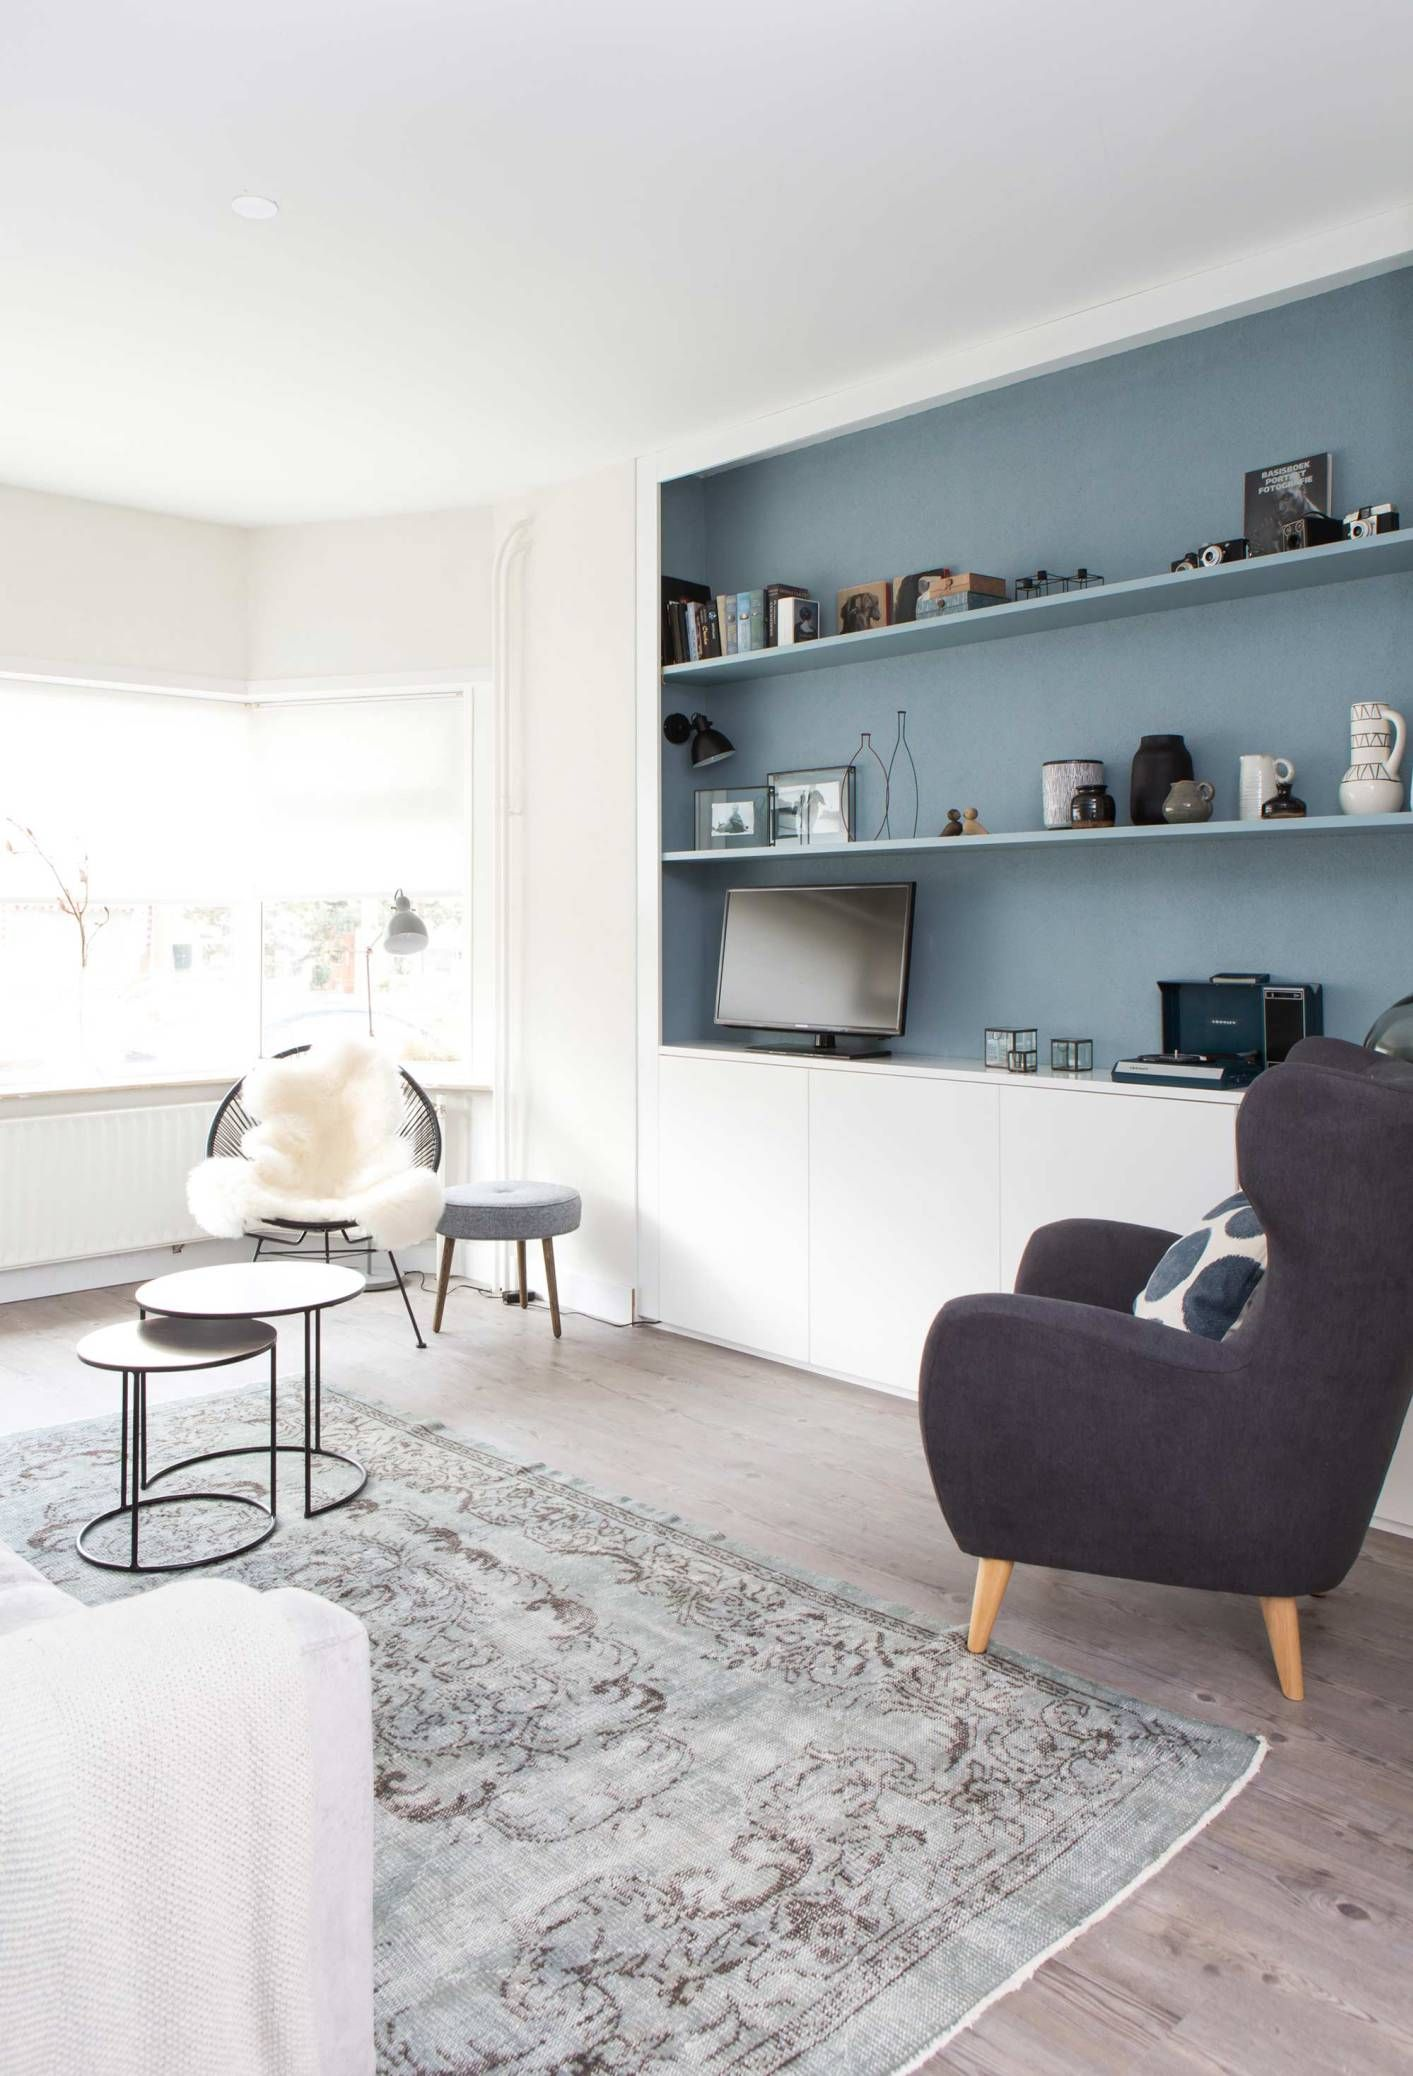 early dew flexa kast : Pin By Kate On Home Pinterest Living Rooms Interiors And Salons